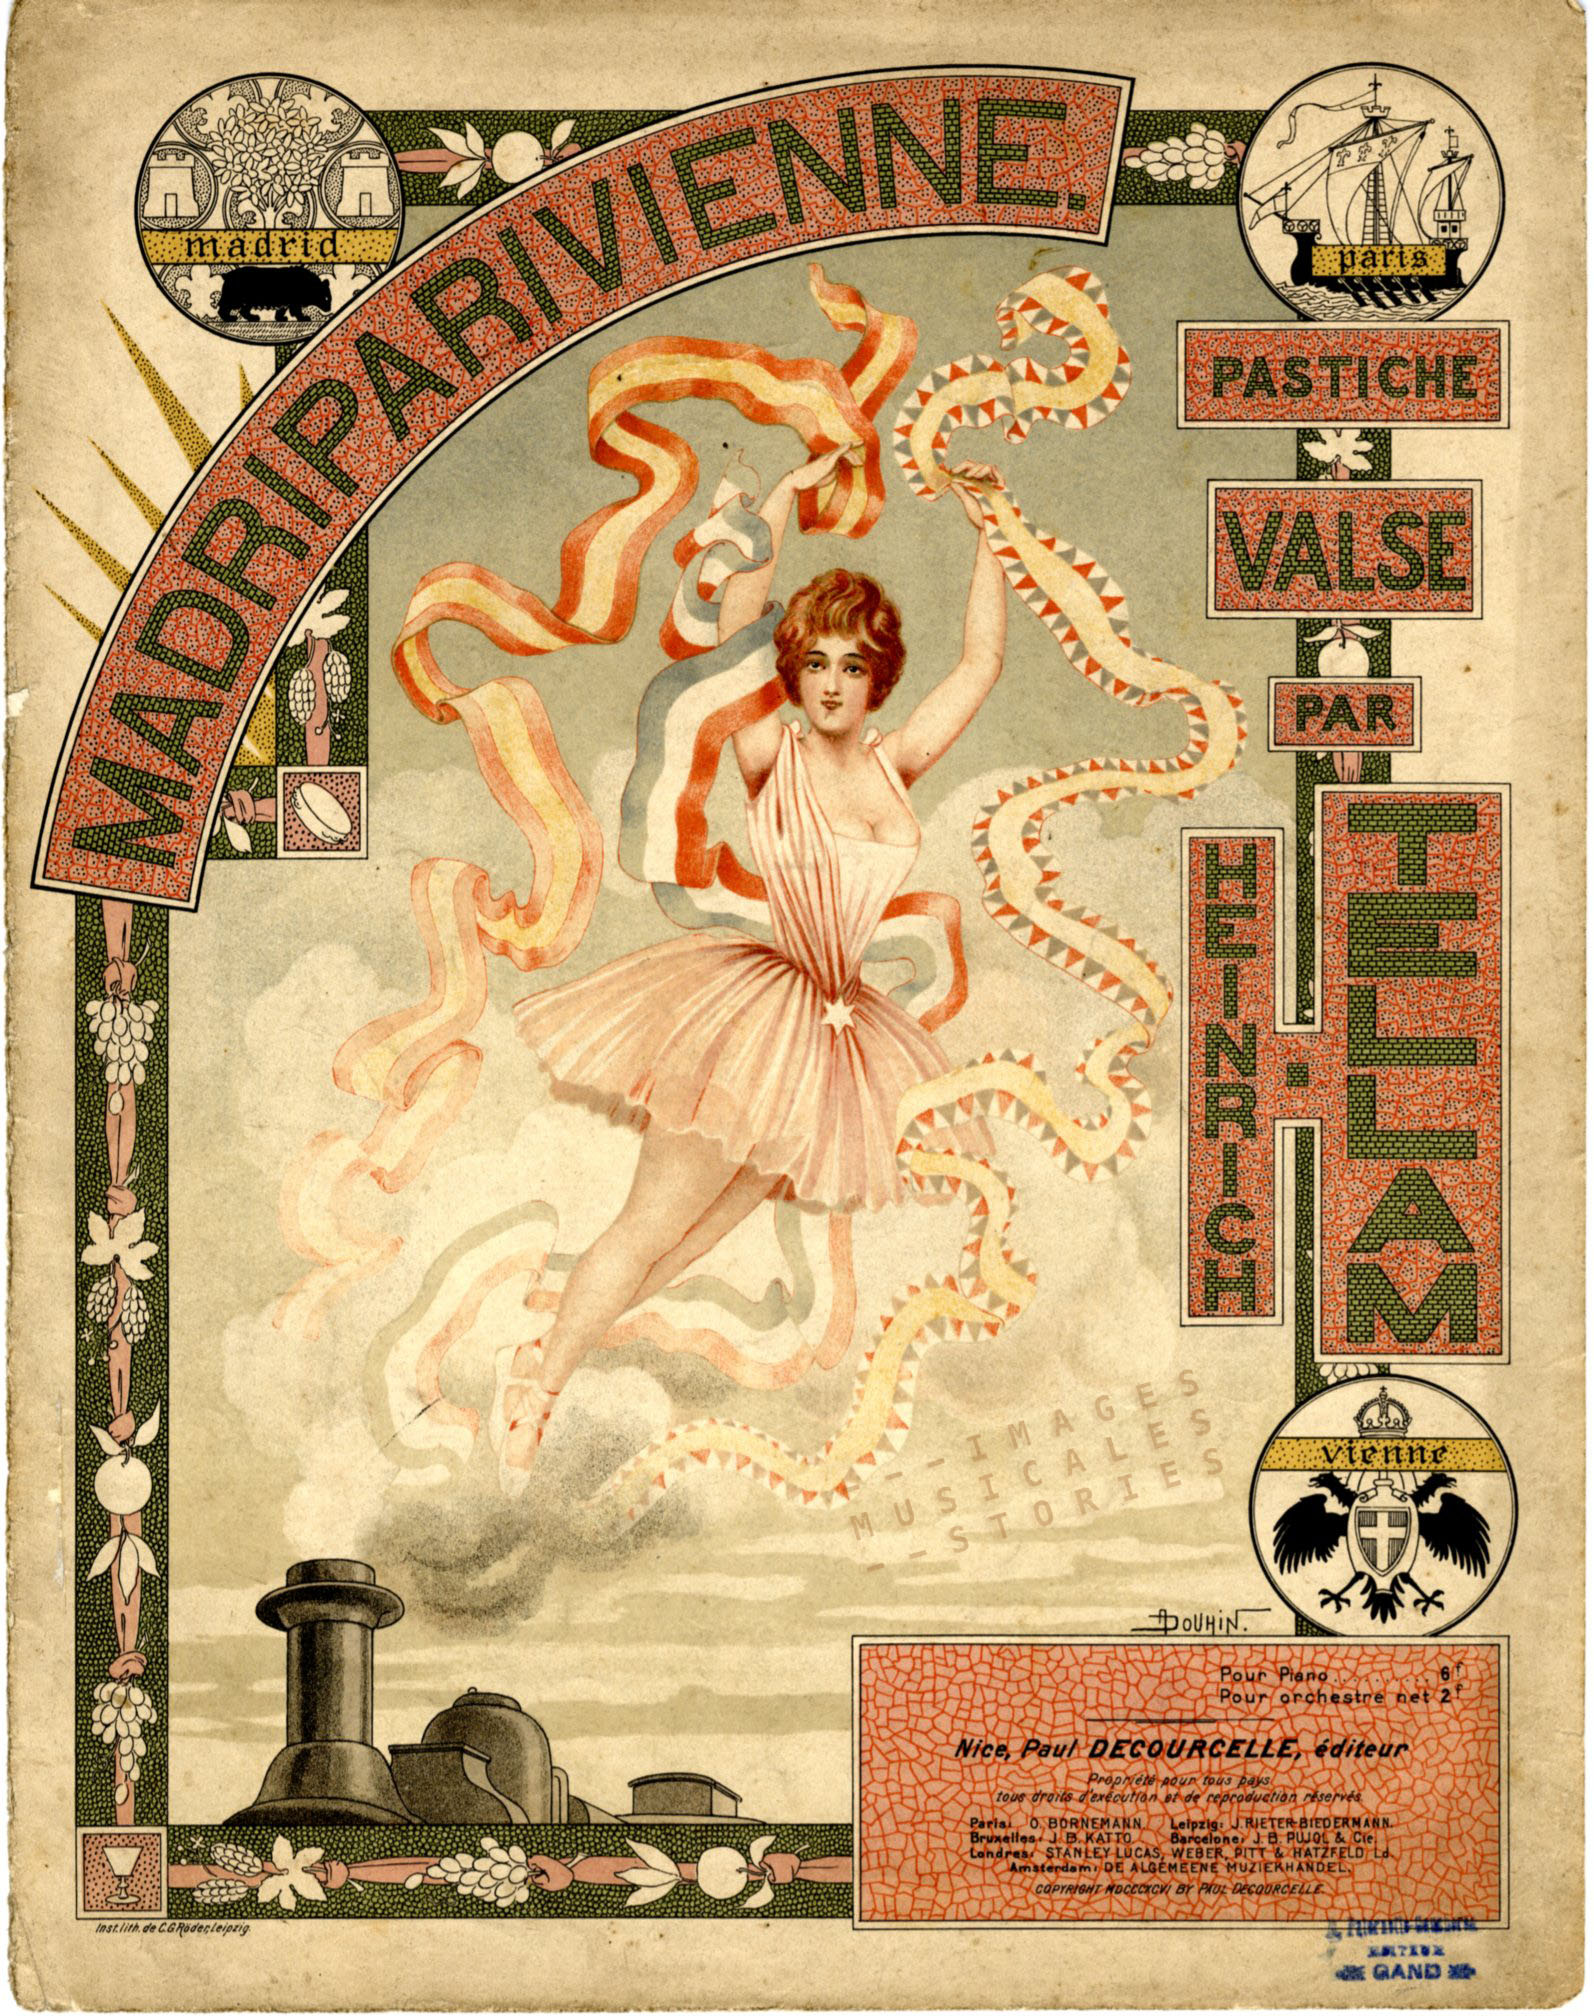 'MadriPariVienne' by H. Tellam. Sheet music cover illustrated by André Douhin (1896)